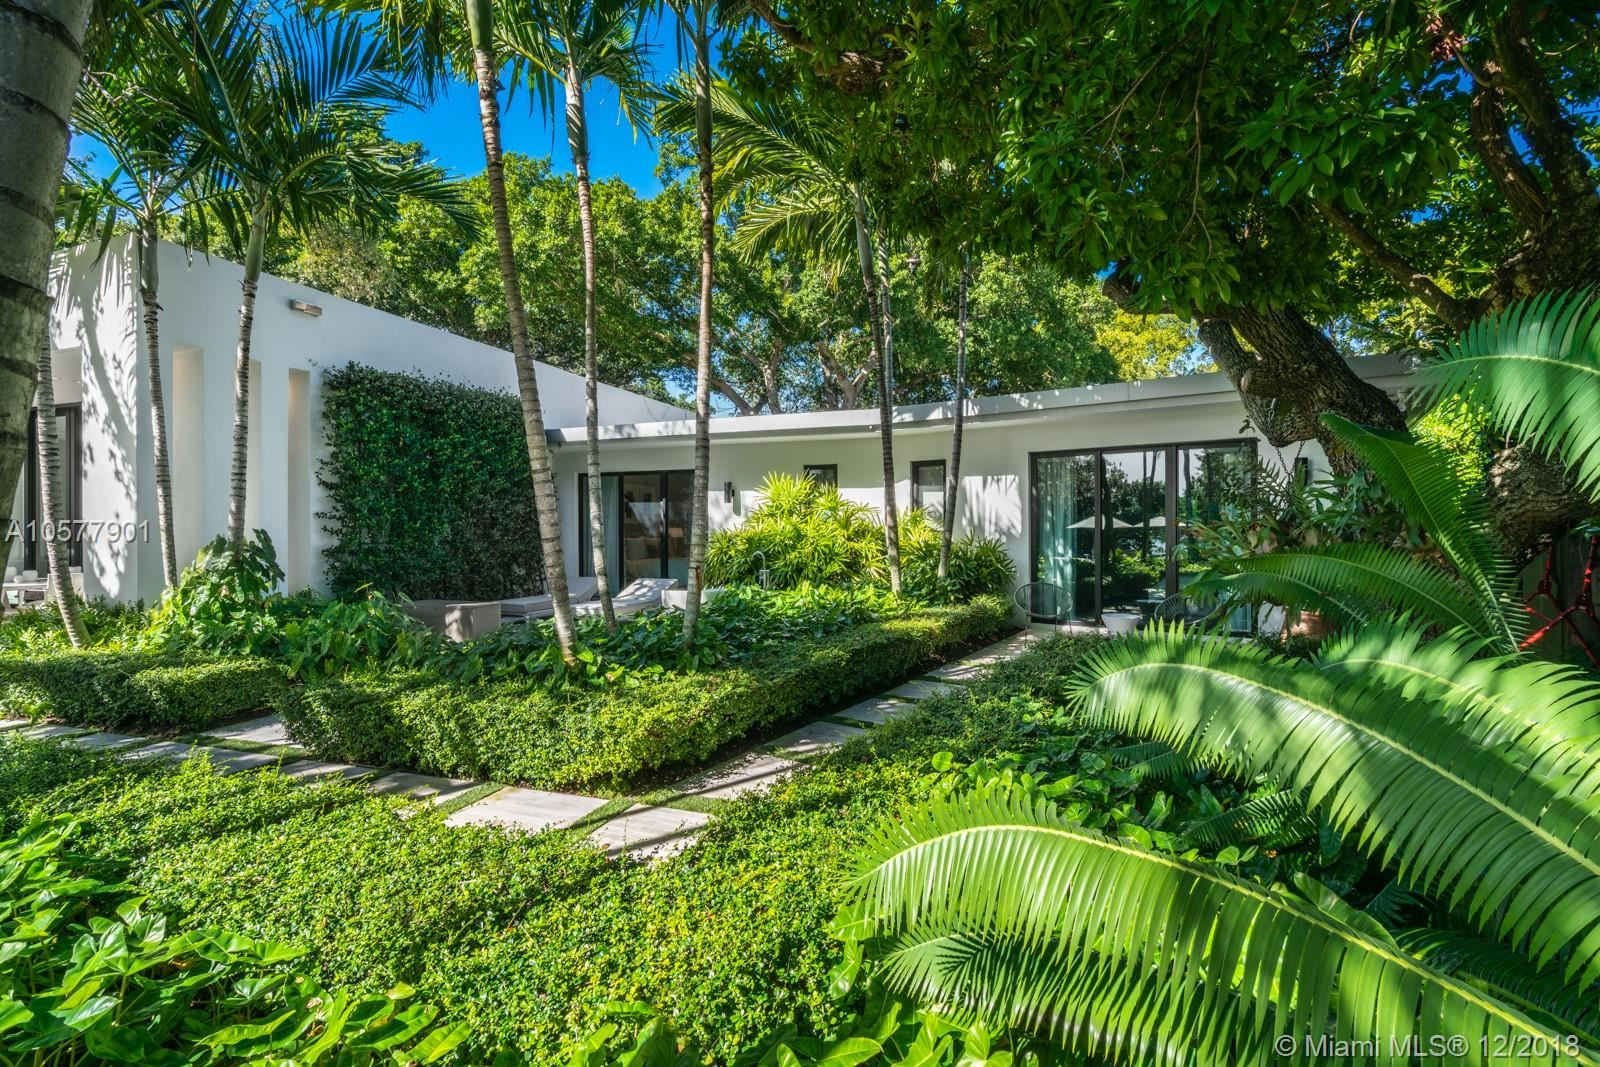 Photo 17 of Listing MLS a10577901 in 5045 Lakeview Drive Miami Beach FL 33140